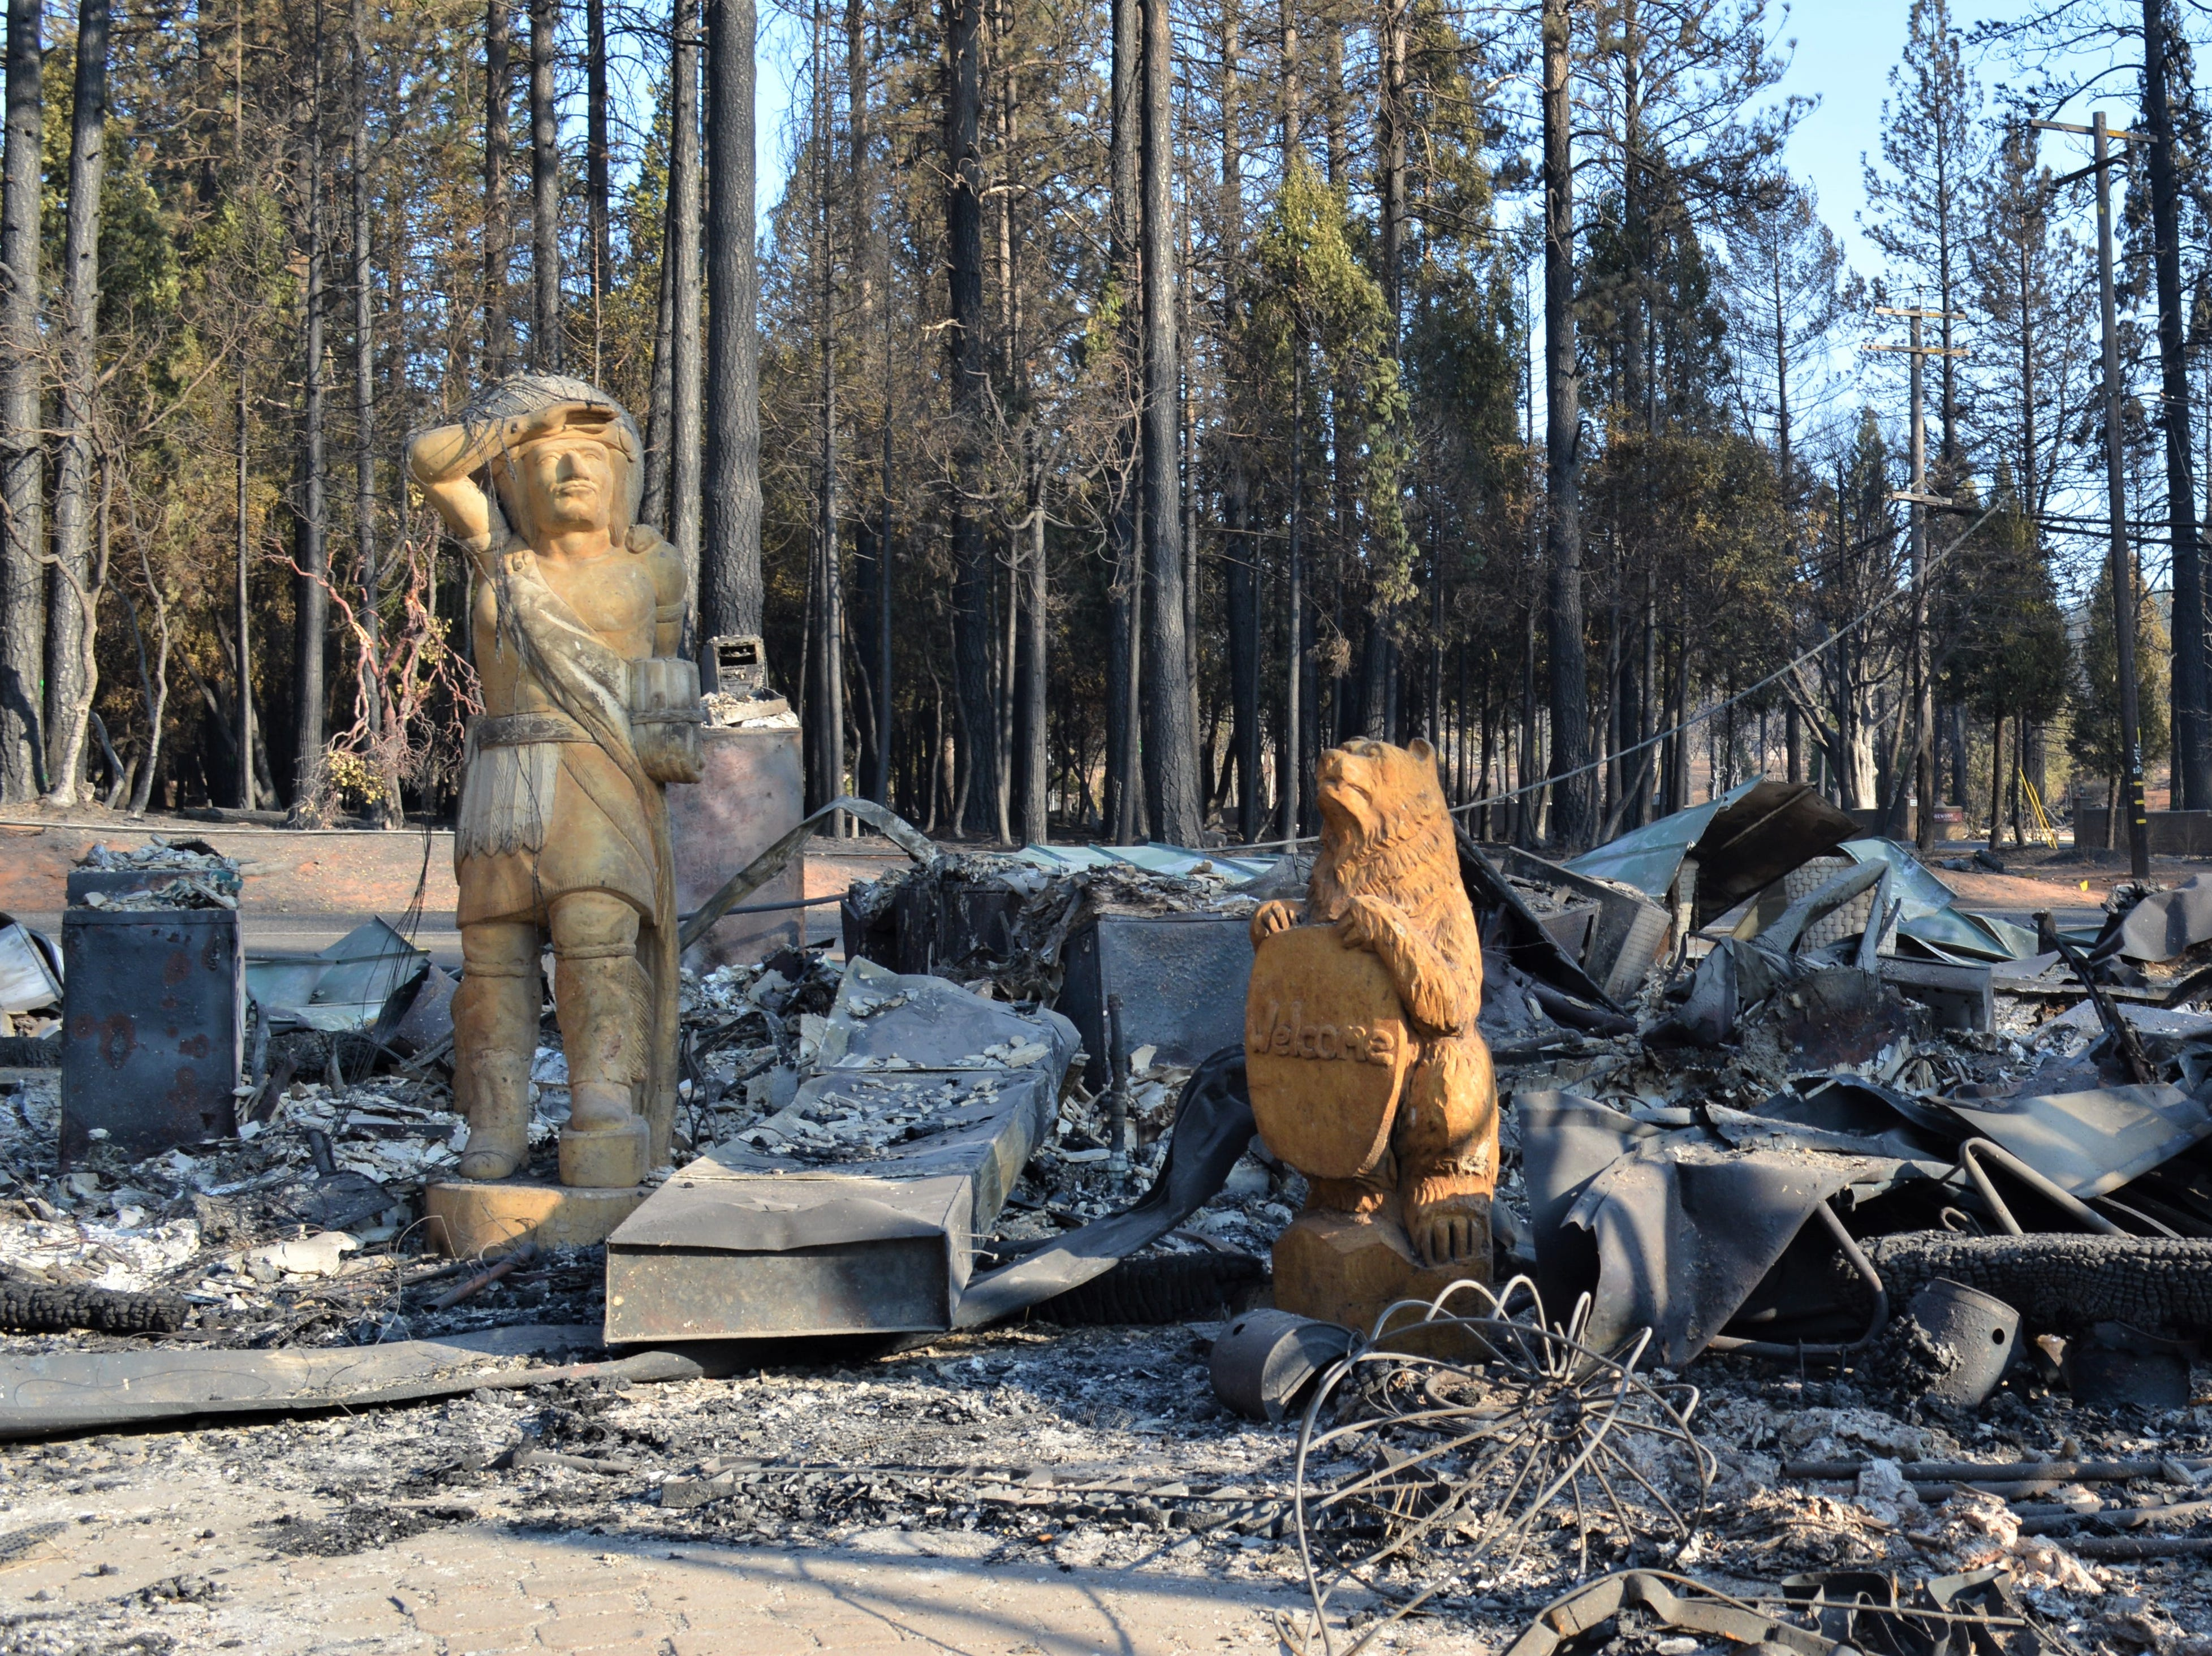 The Camp Fire, which began Nov. 8, 2018, destroyed hundreds of homes and buildings in Paradise, California.